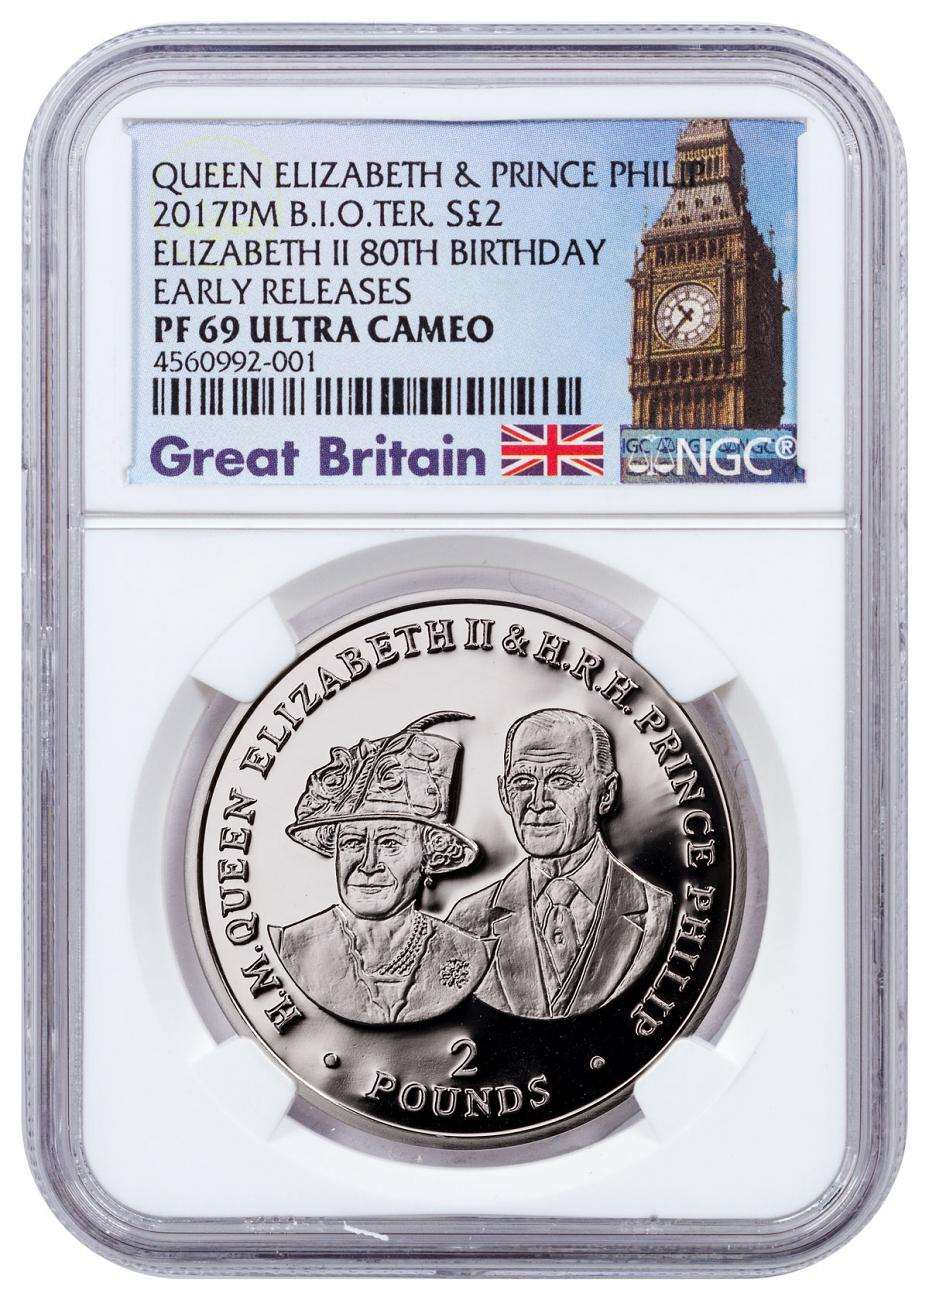 2017 British Indian Ocean Territory 70 Years of Queen Elizabeth II and Prince Phillip - 80th Birthday Silver Proof £2 Coin NGC PF69 UC ER Exclusive Big Ben Label